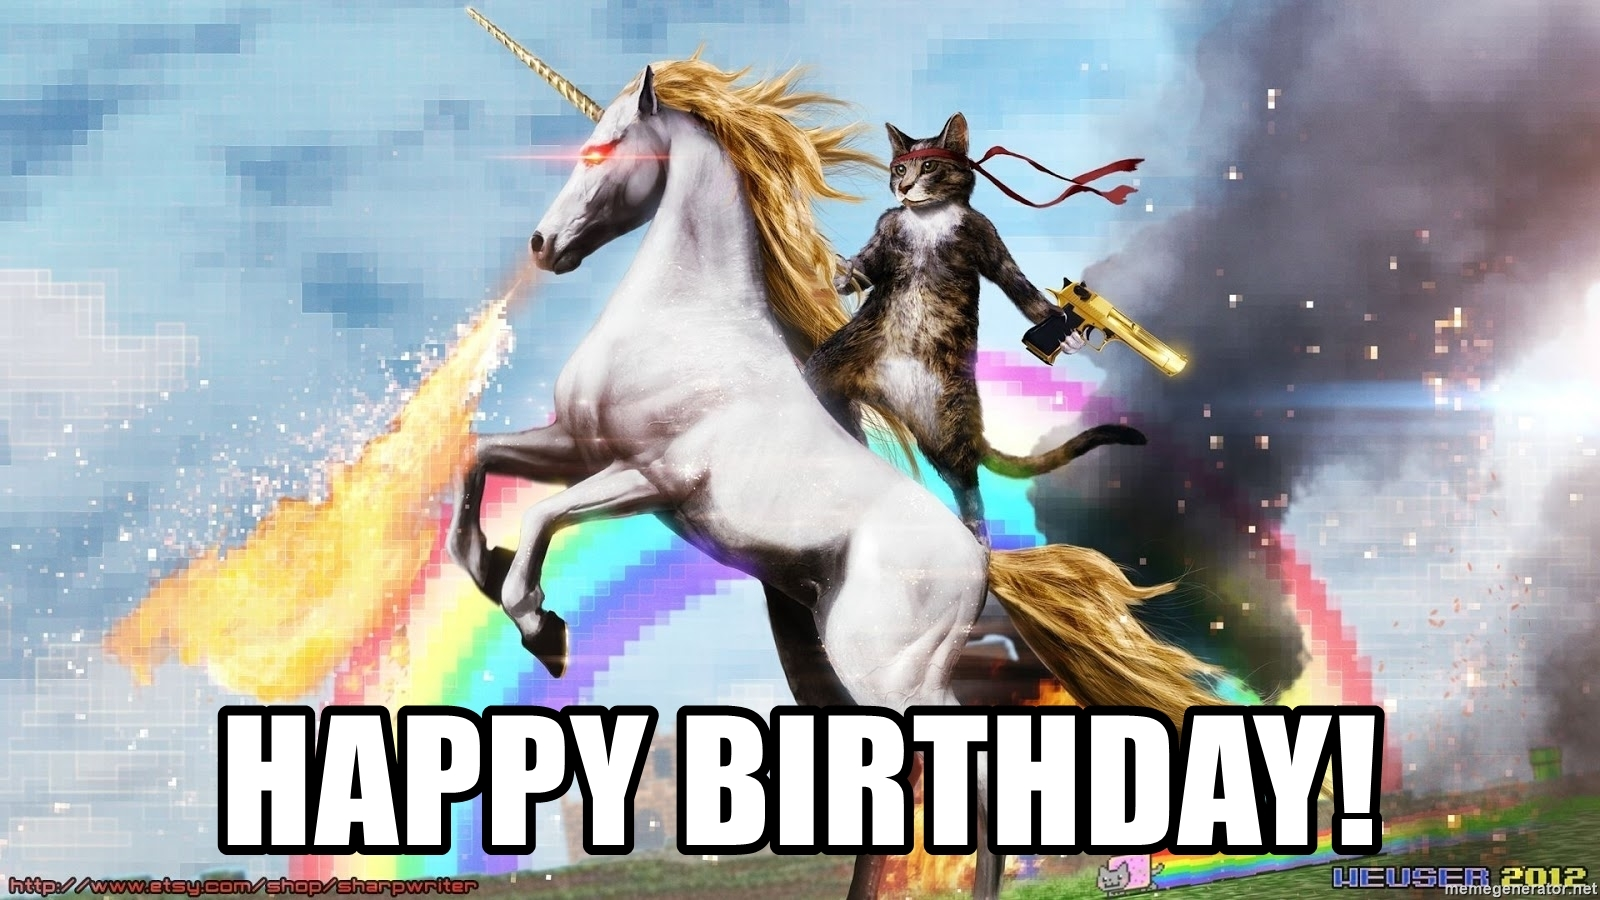 Happy Birthday - Cat with a golden gun riding a fire breathing unicorn